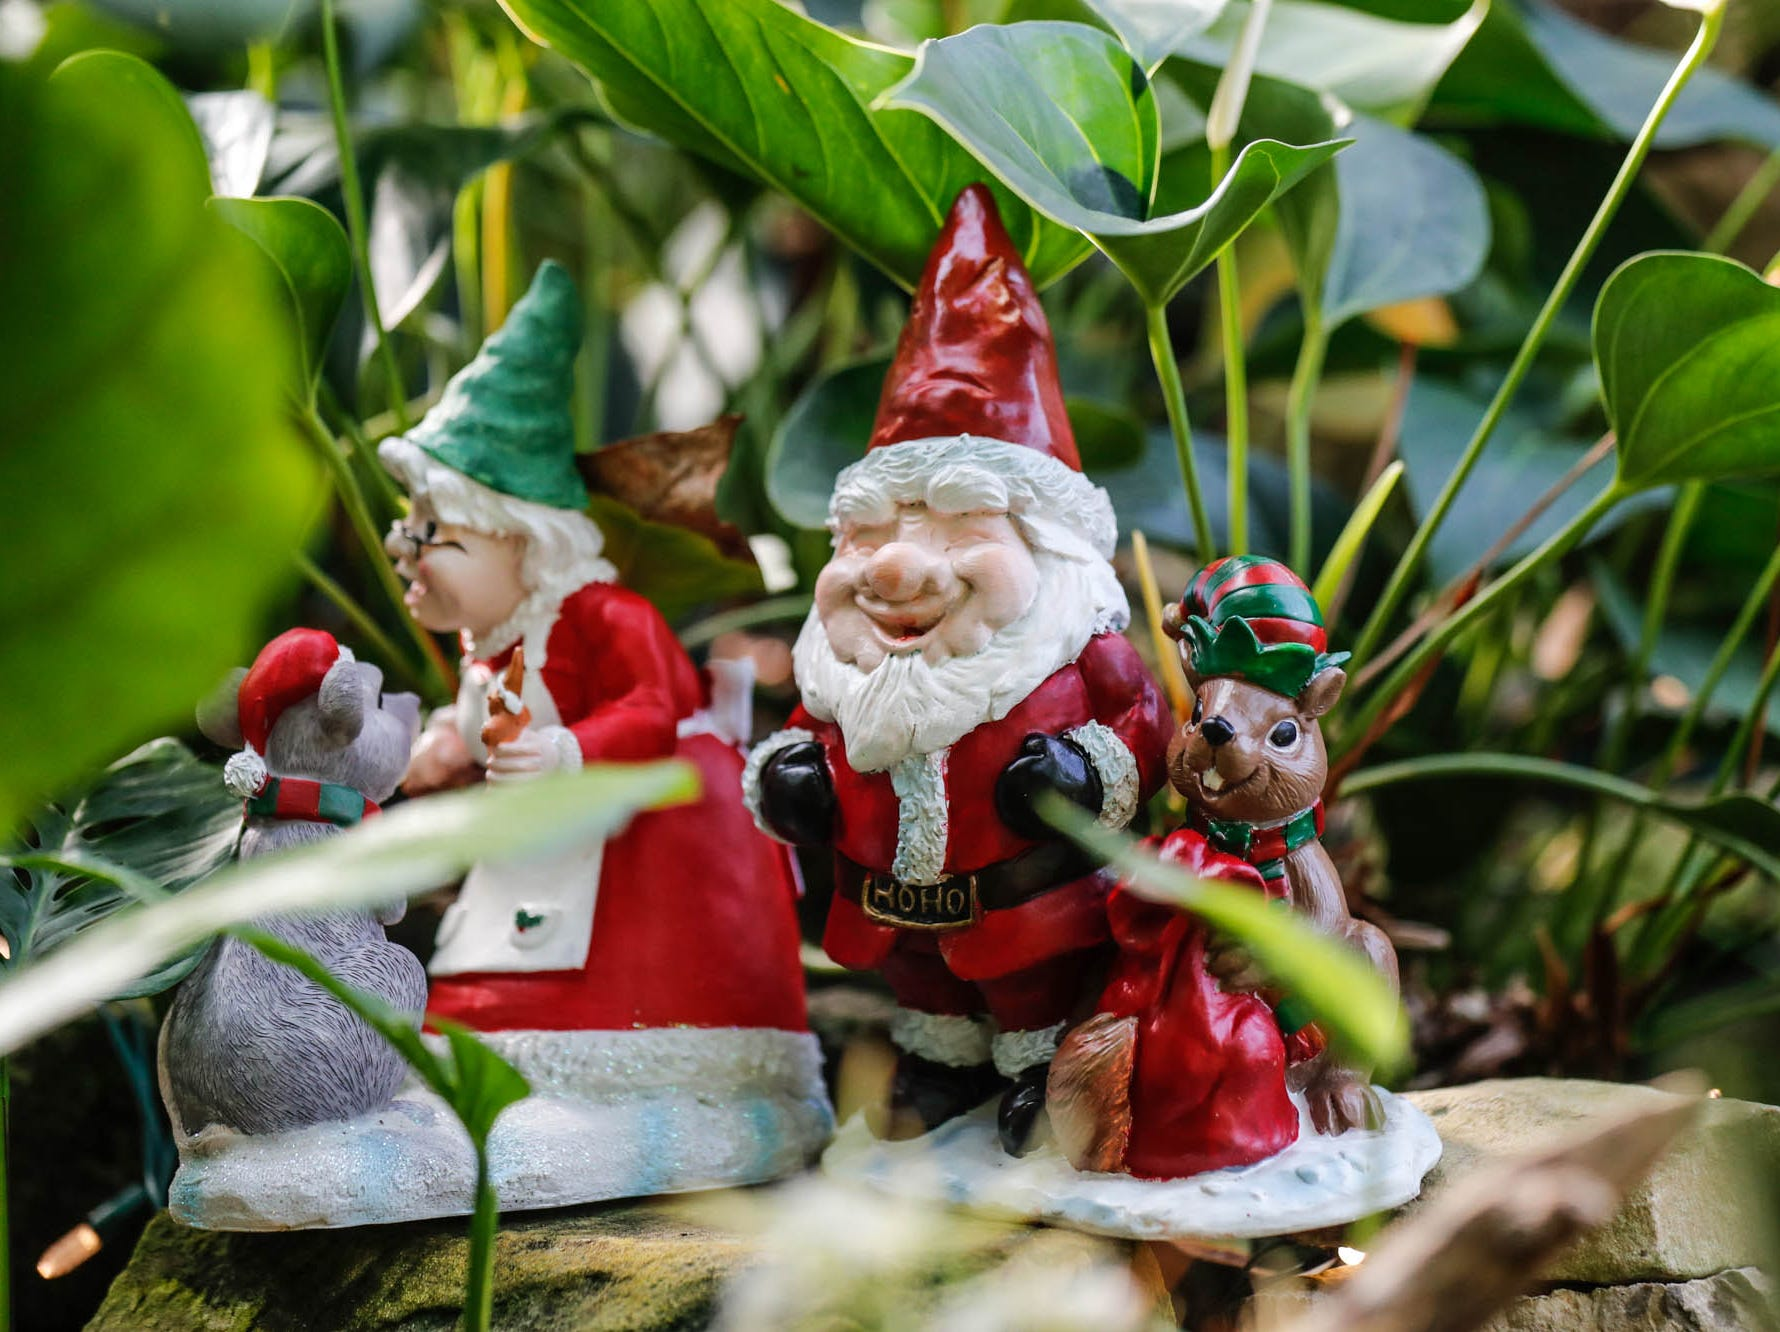 Christmas gnomes decorate the Garfield Park Conservatory on Saturday, Dec. 29, 2018.